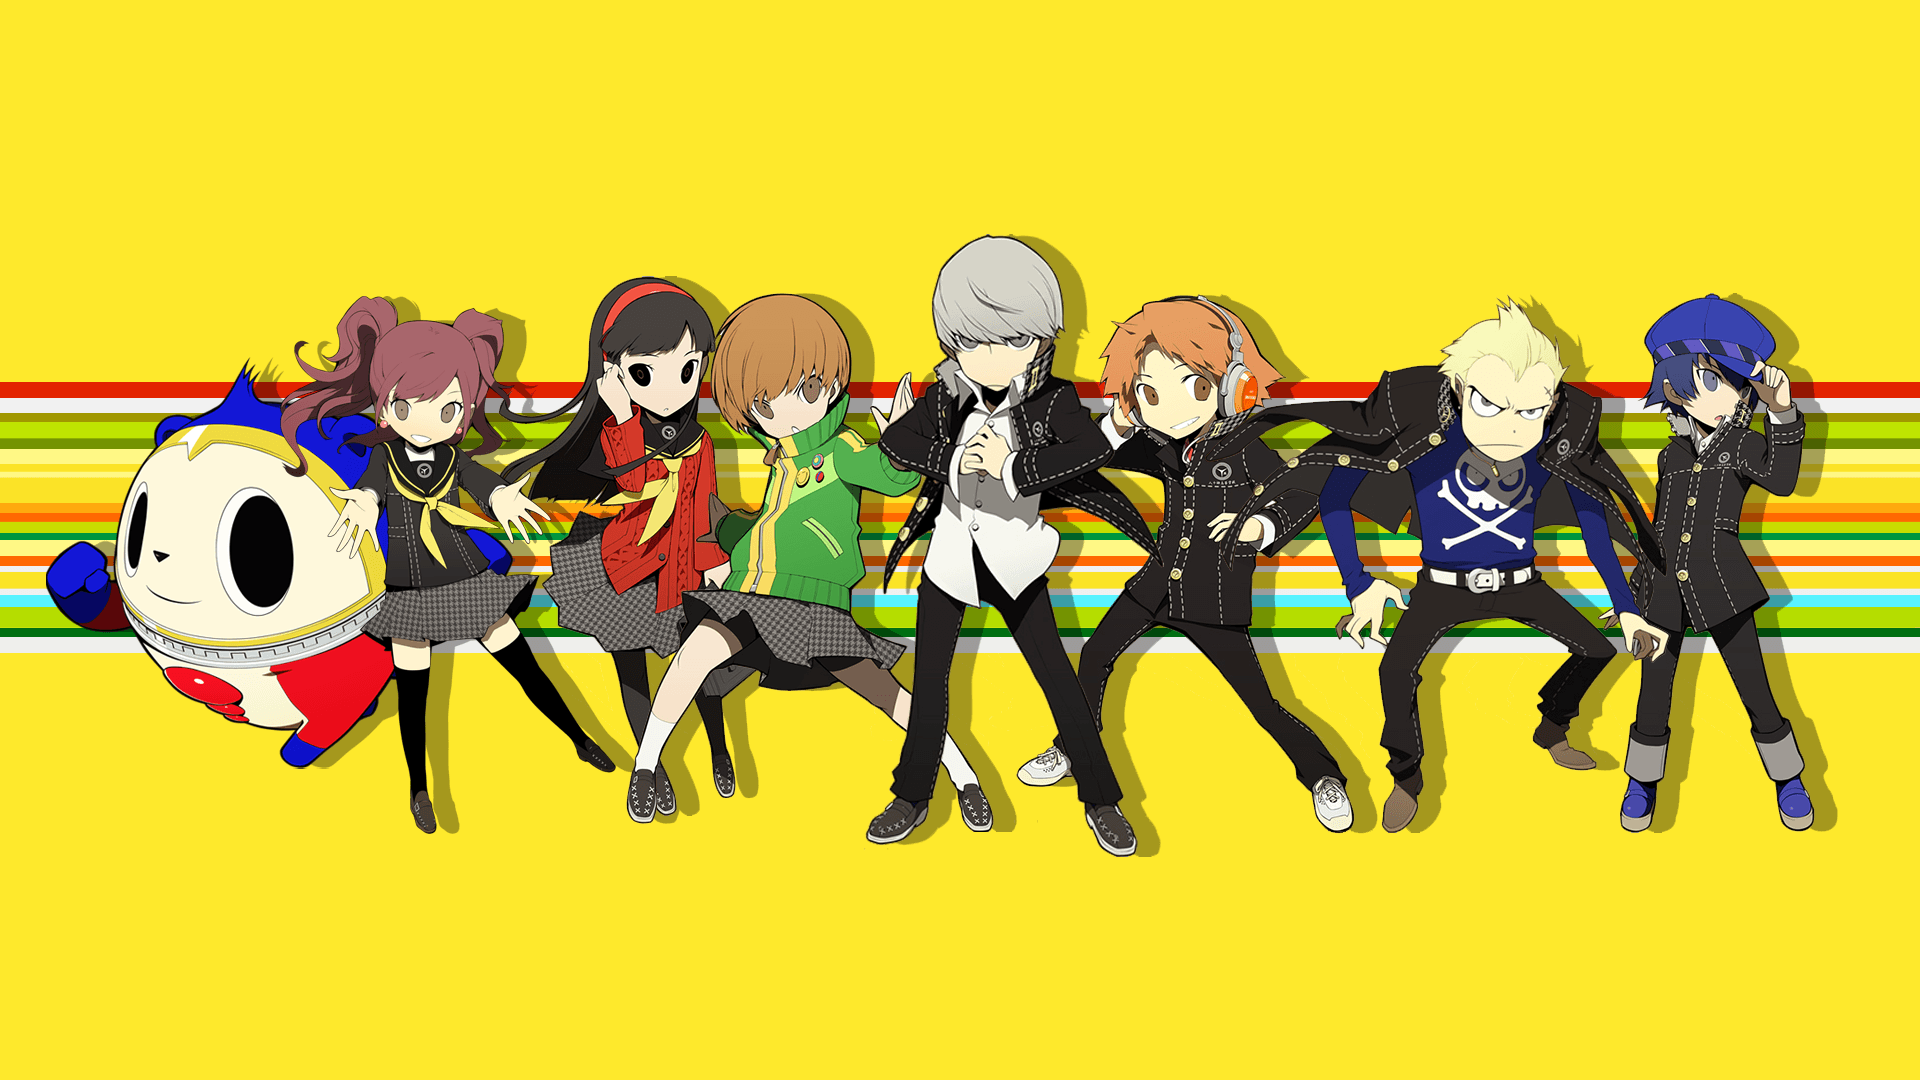 Persona 4 Wallpapers Top Free Persona 4 Backgrounds Wallpaperaccess